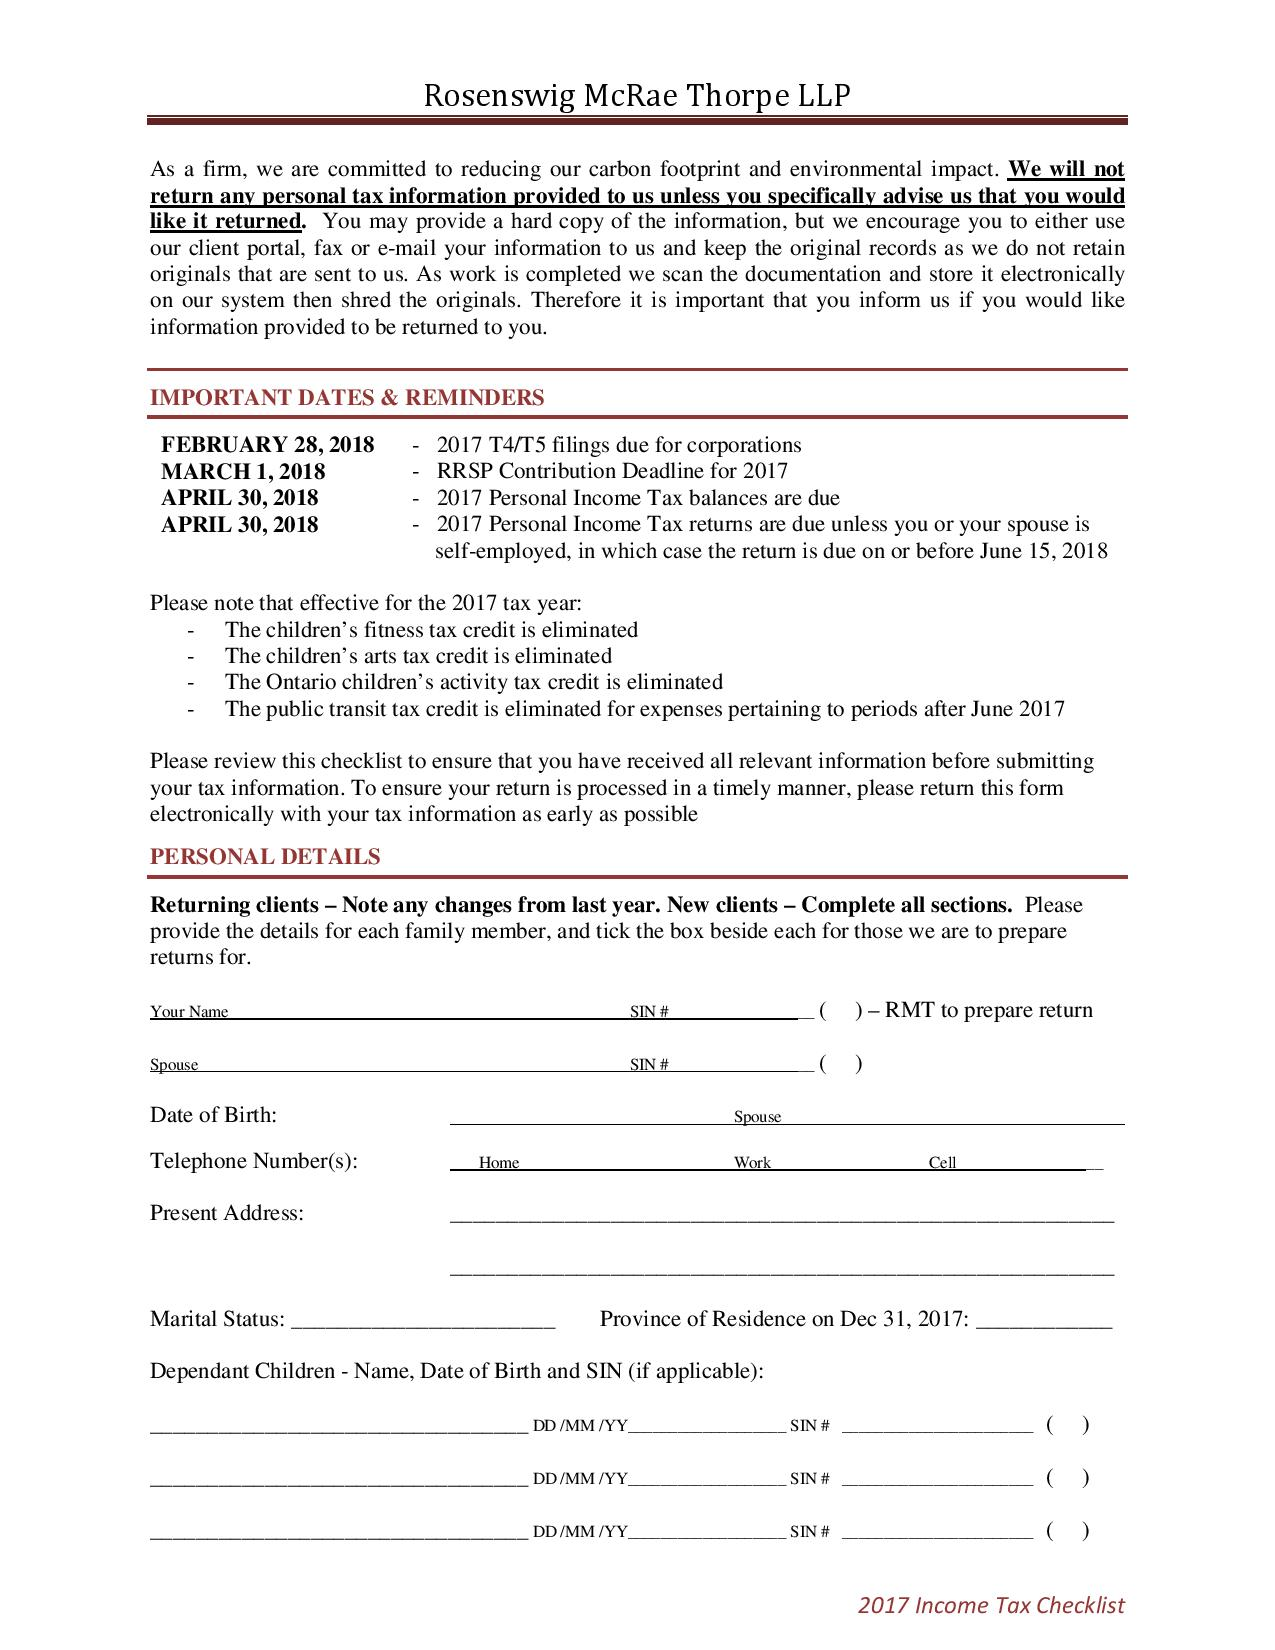 2017 PERSONAL INCOME TAX CHECKLIST (1)-page-002.jpg